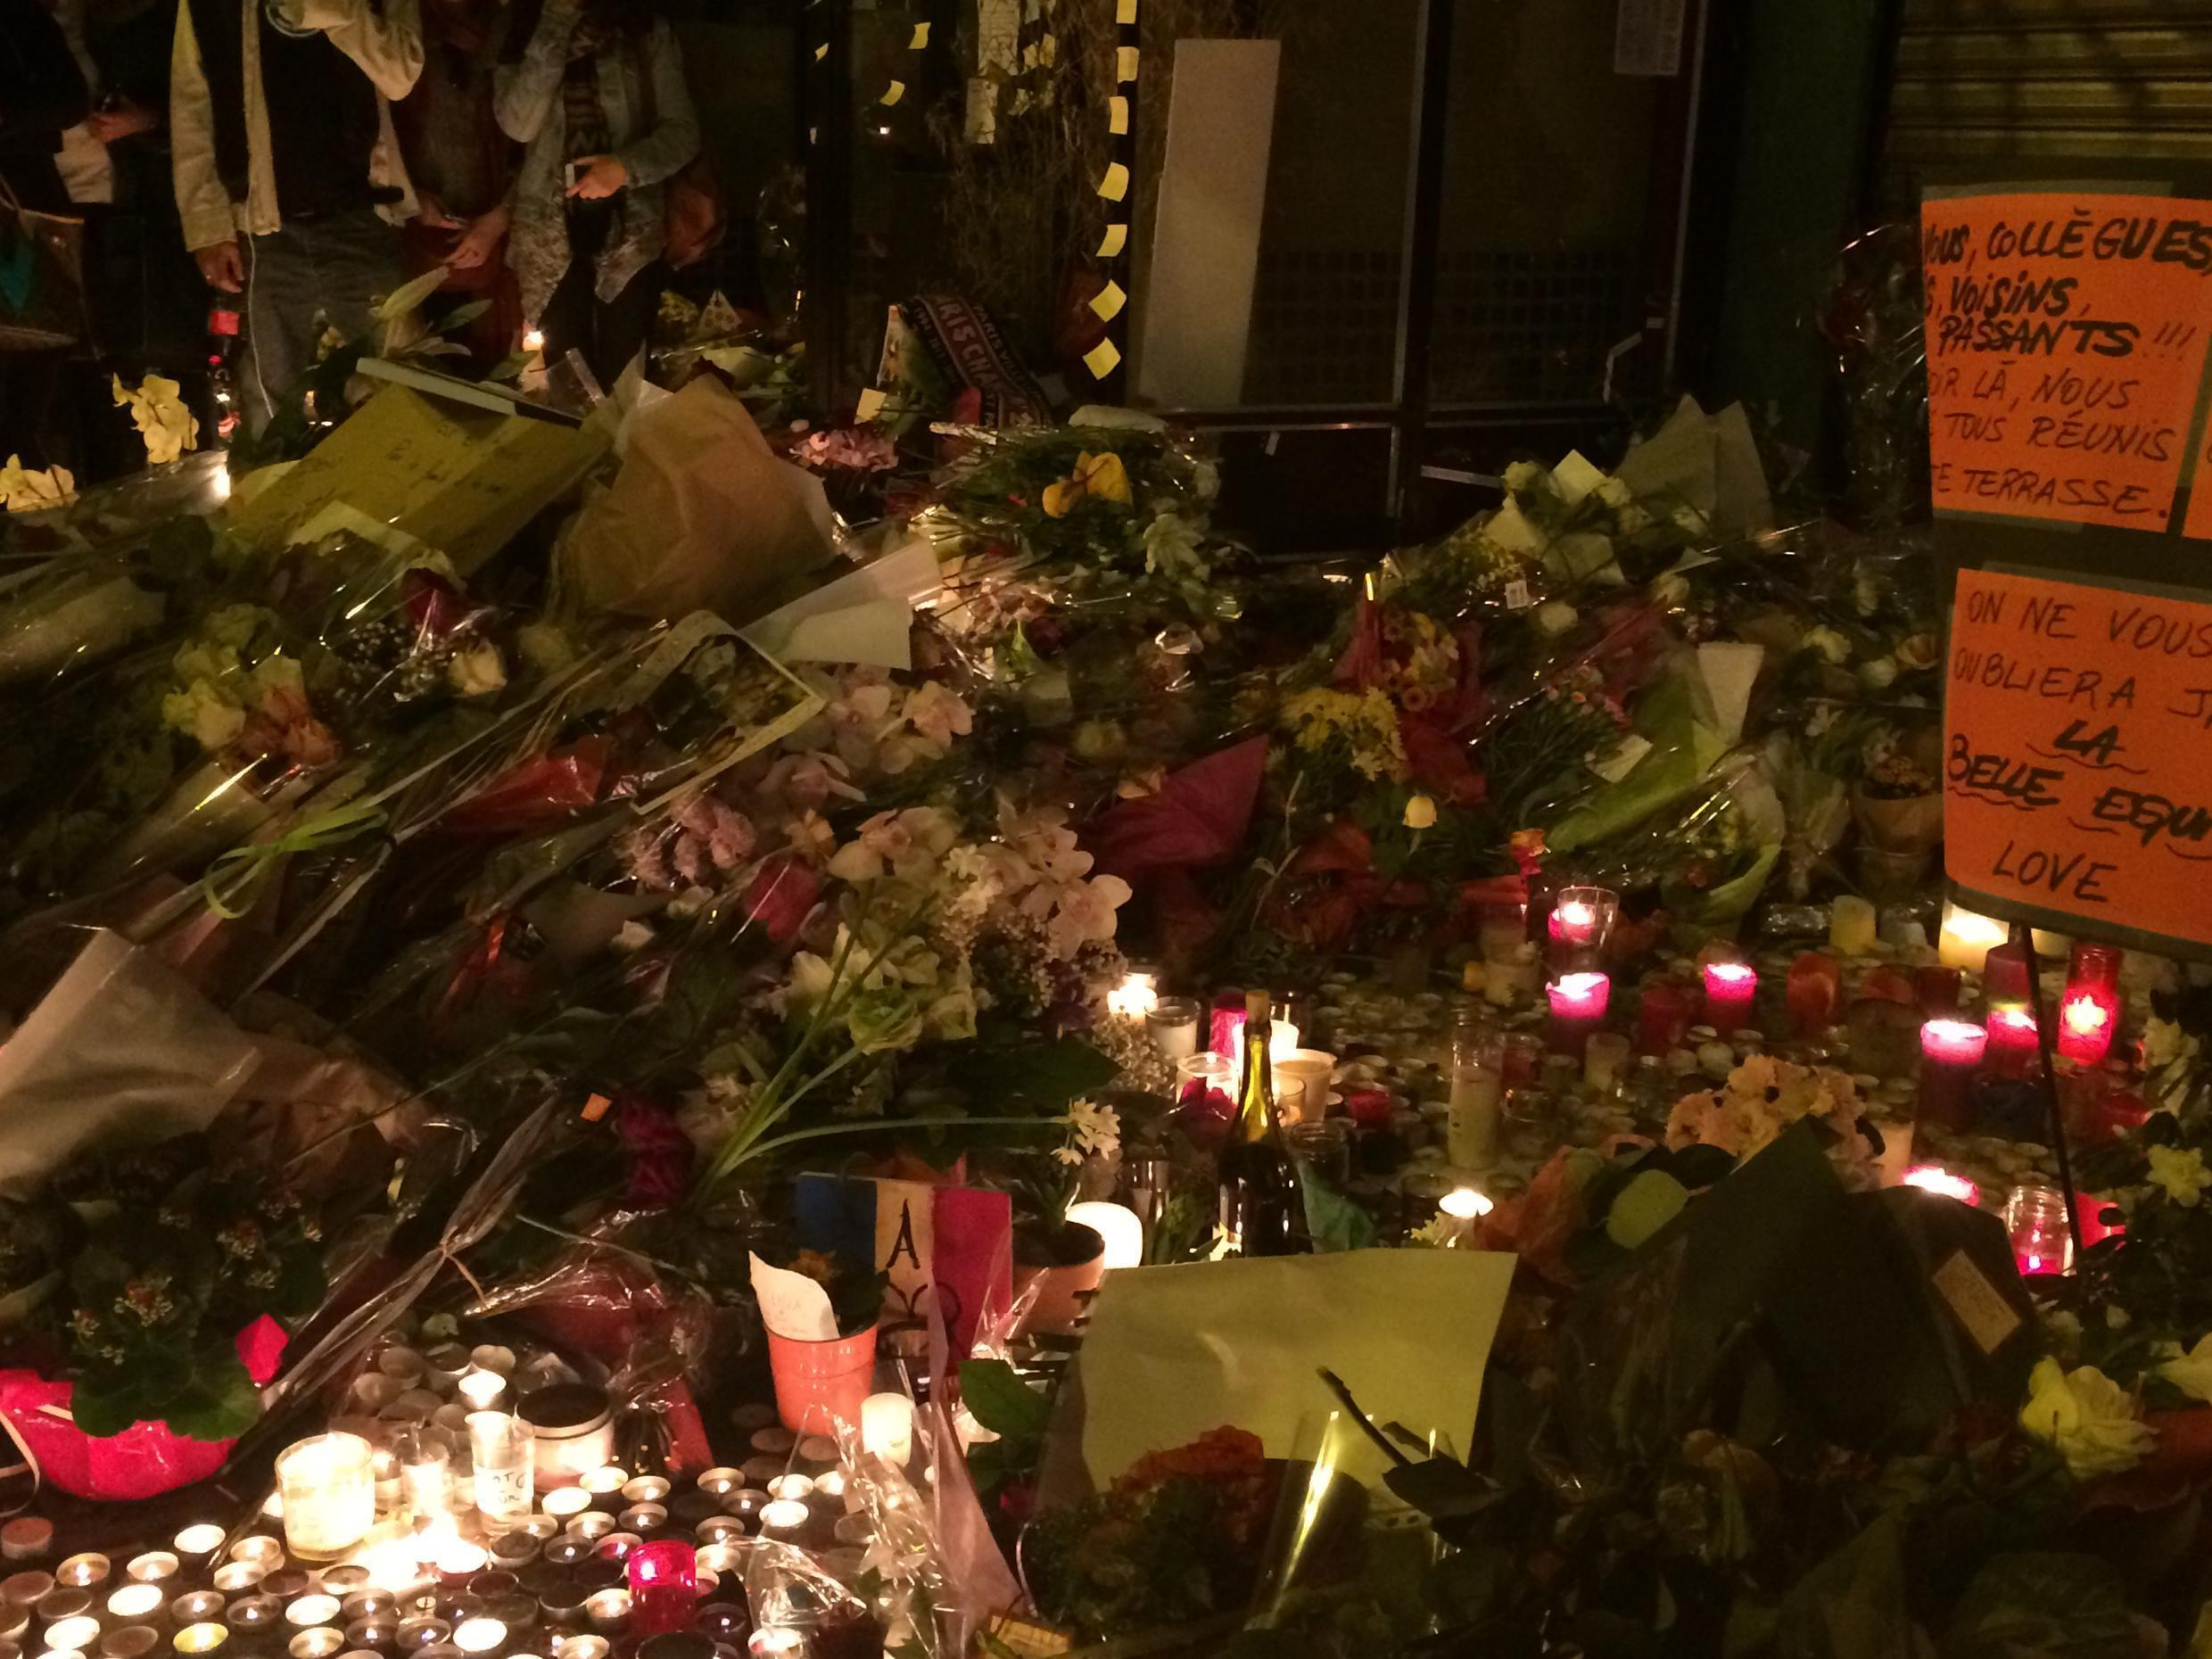 Flowers and candles outside the Belle Equipe.